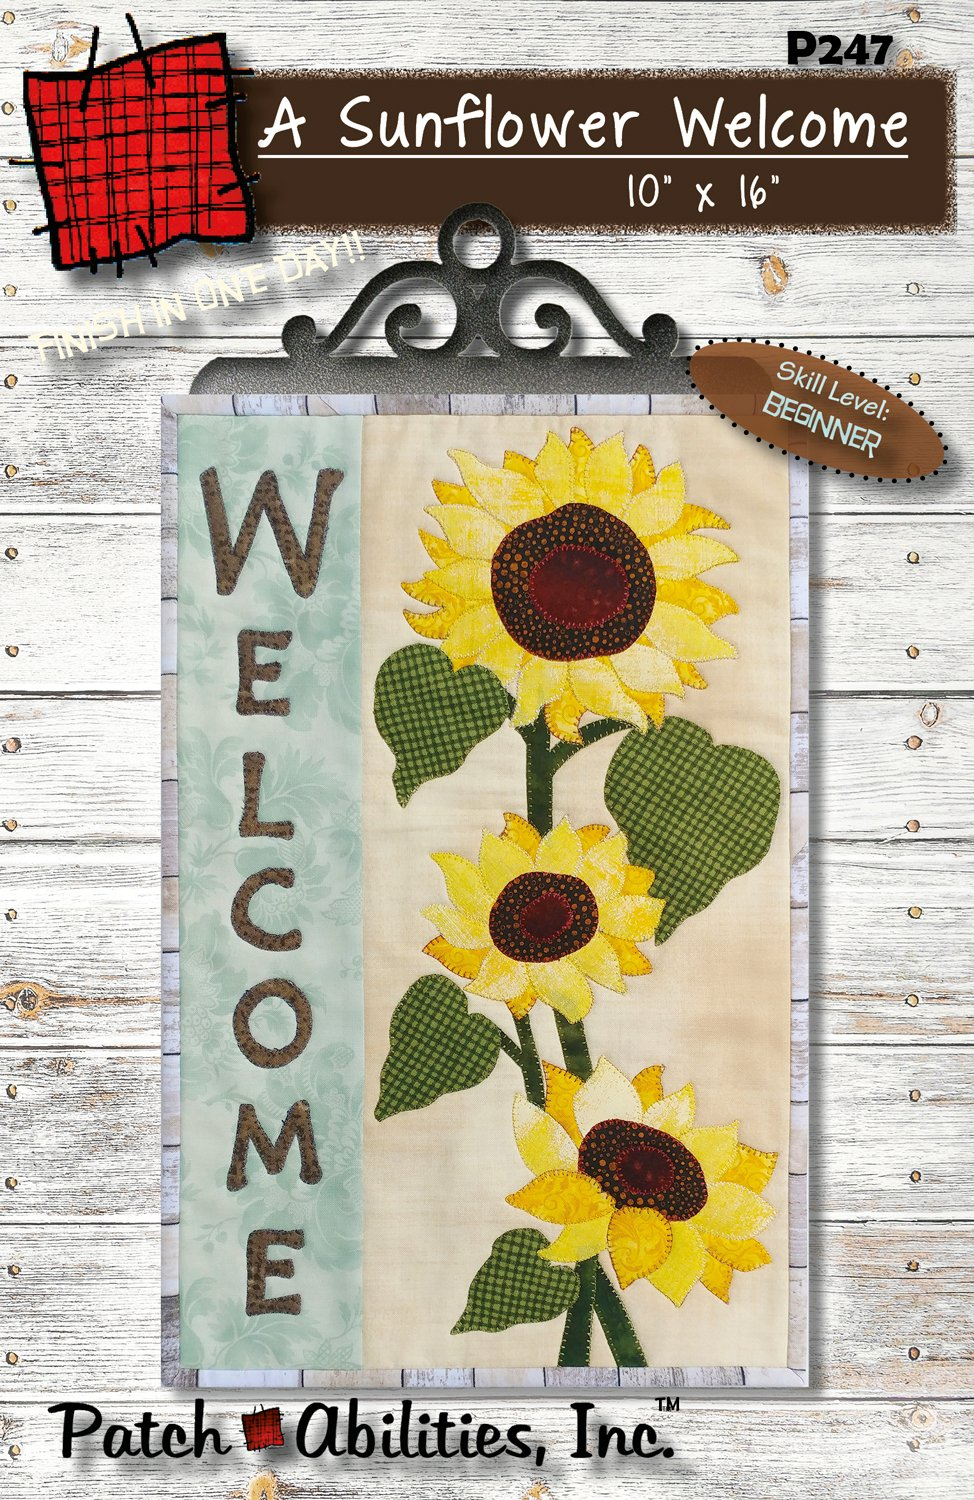 P247 Welcome Sunflower pattern